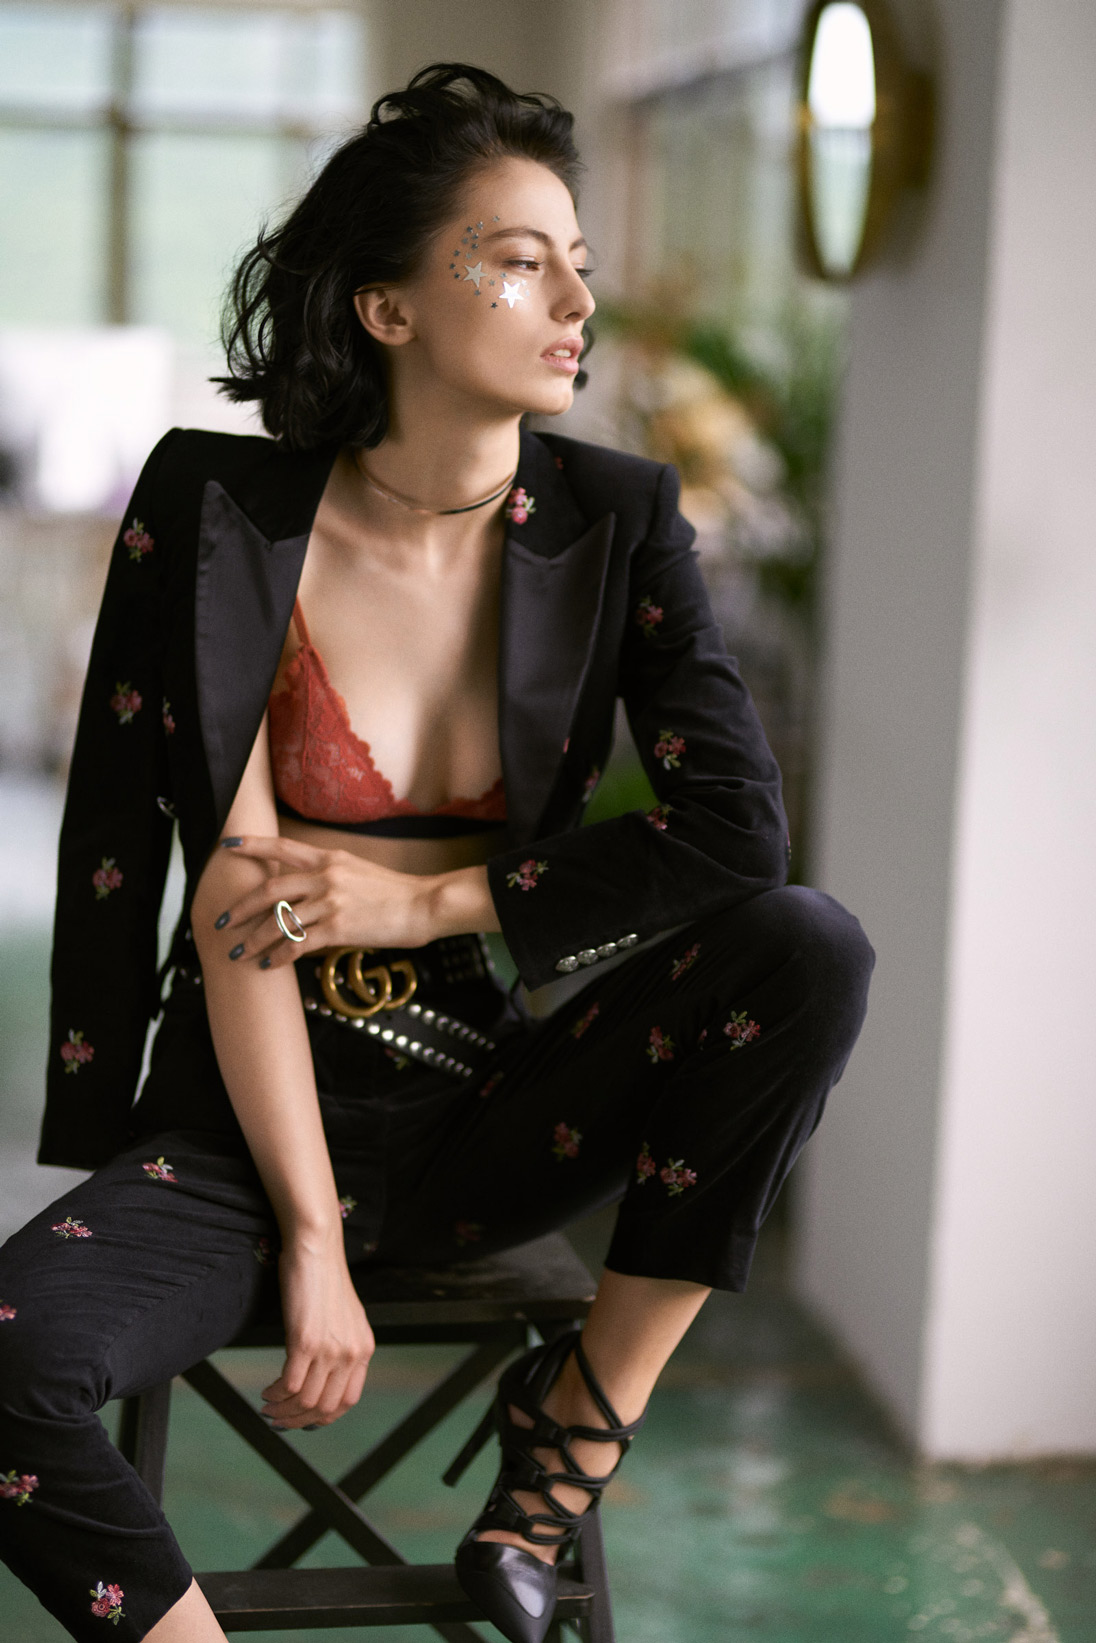 Model poses in a modern pant suit from The Kooples and bralette from COS